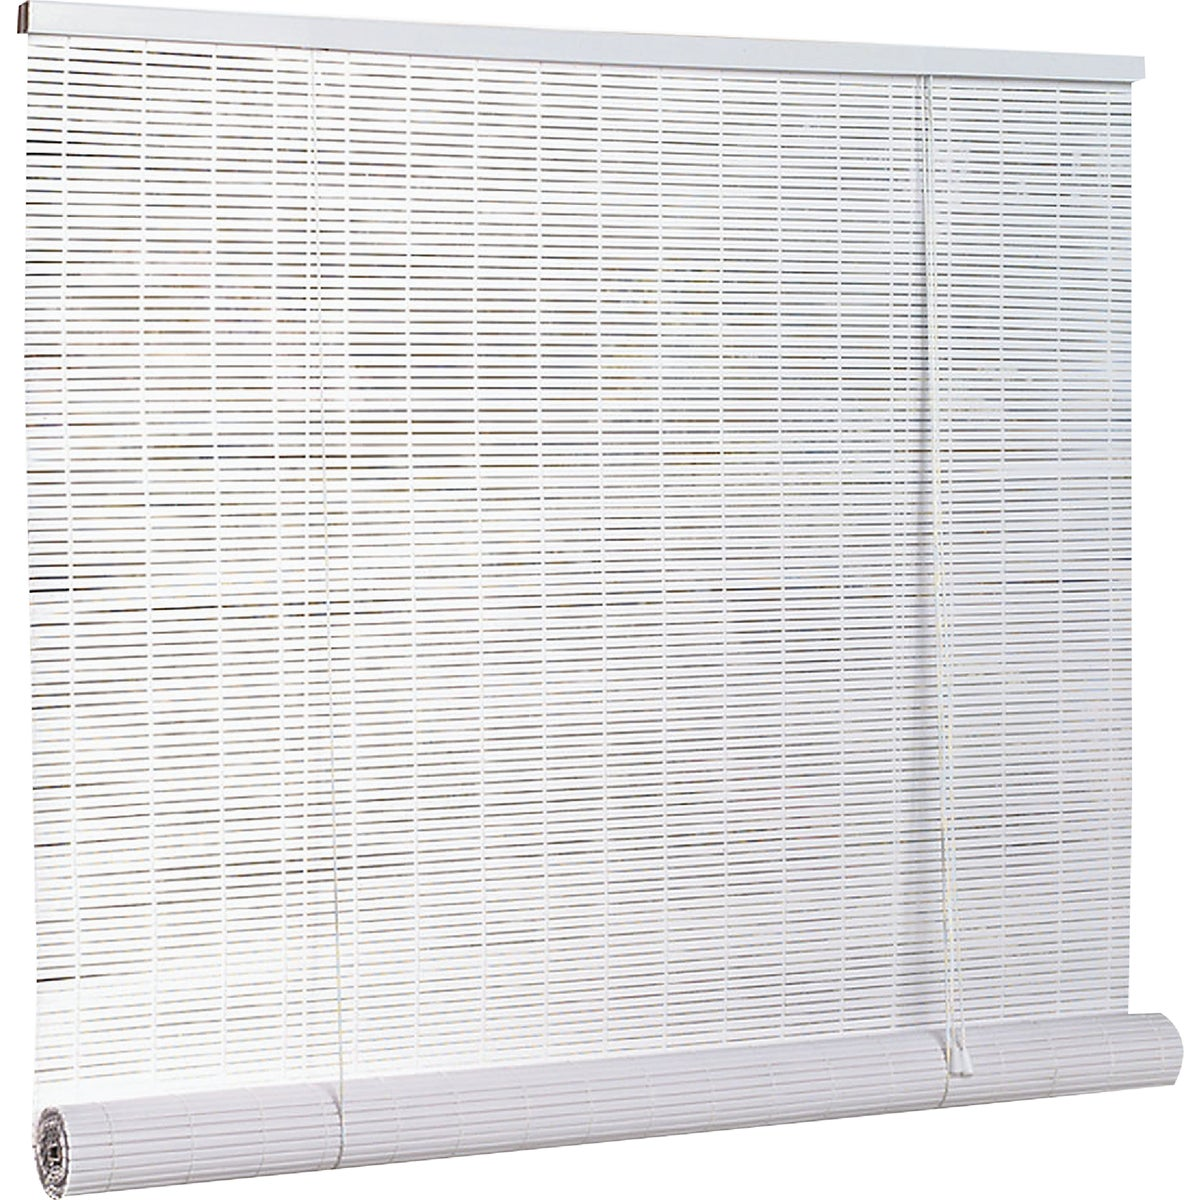 120X72 PVC WHITE BLIND - 0321106 by Lewis Hyman